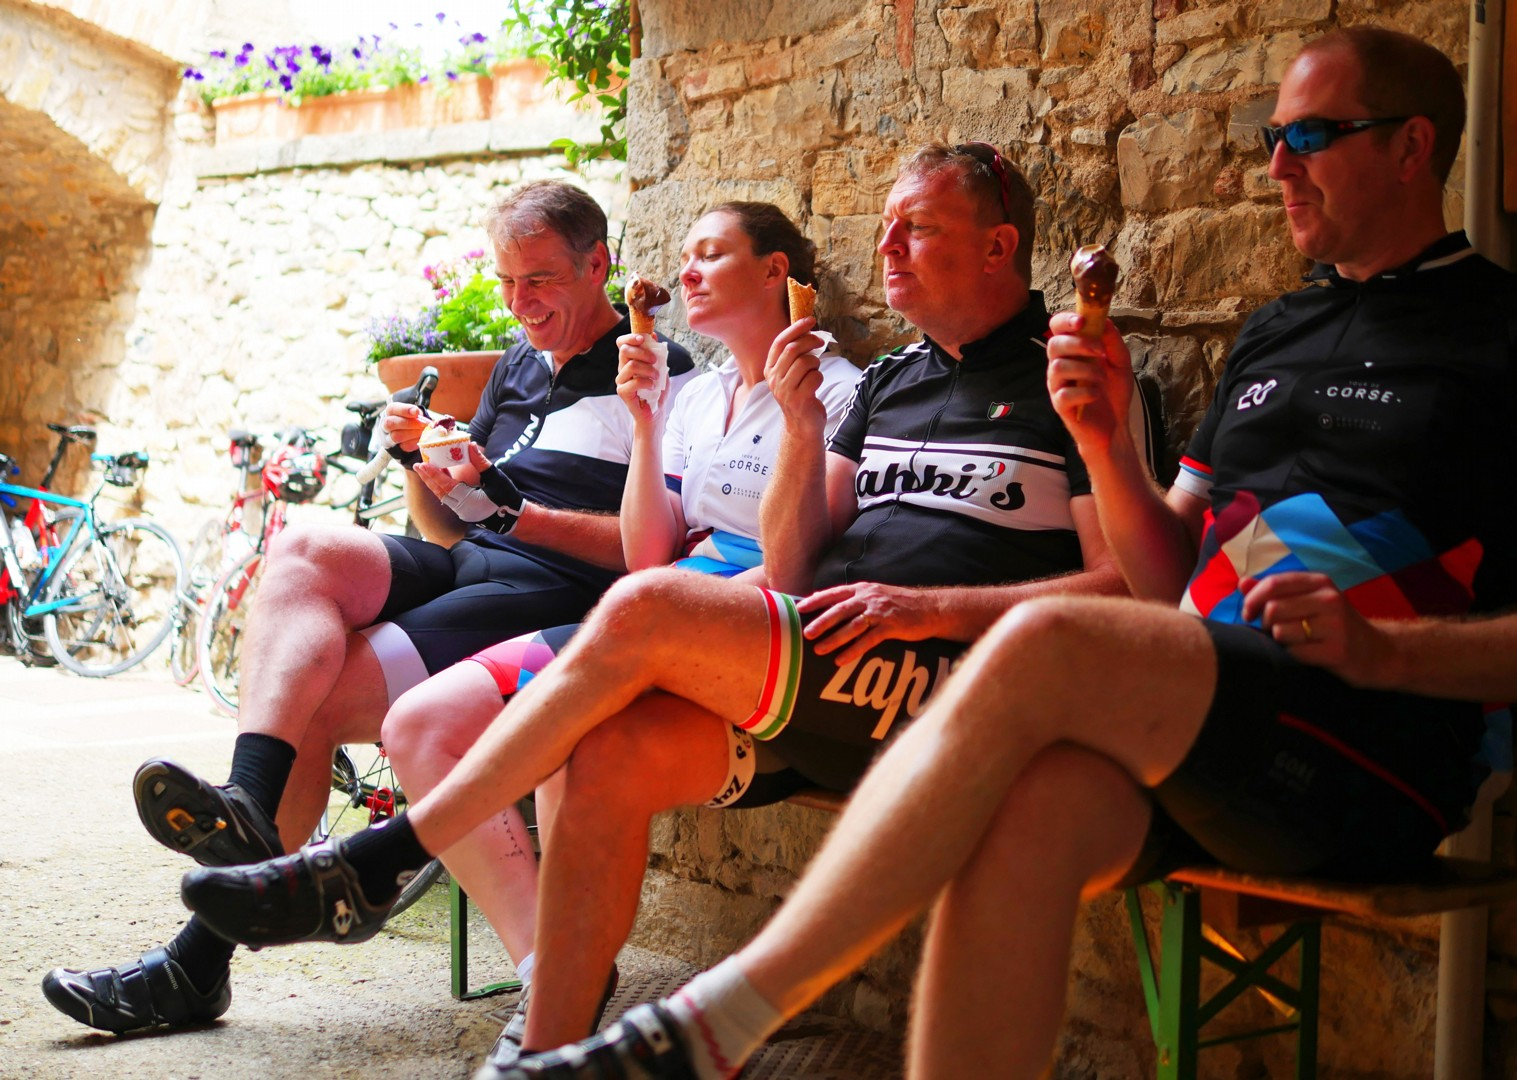 team-gelato-guided-italy-holiday.jpg - Italy - Tuscany Tourer - Guided Road Cycling Holiday - Road Cycling